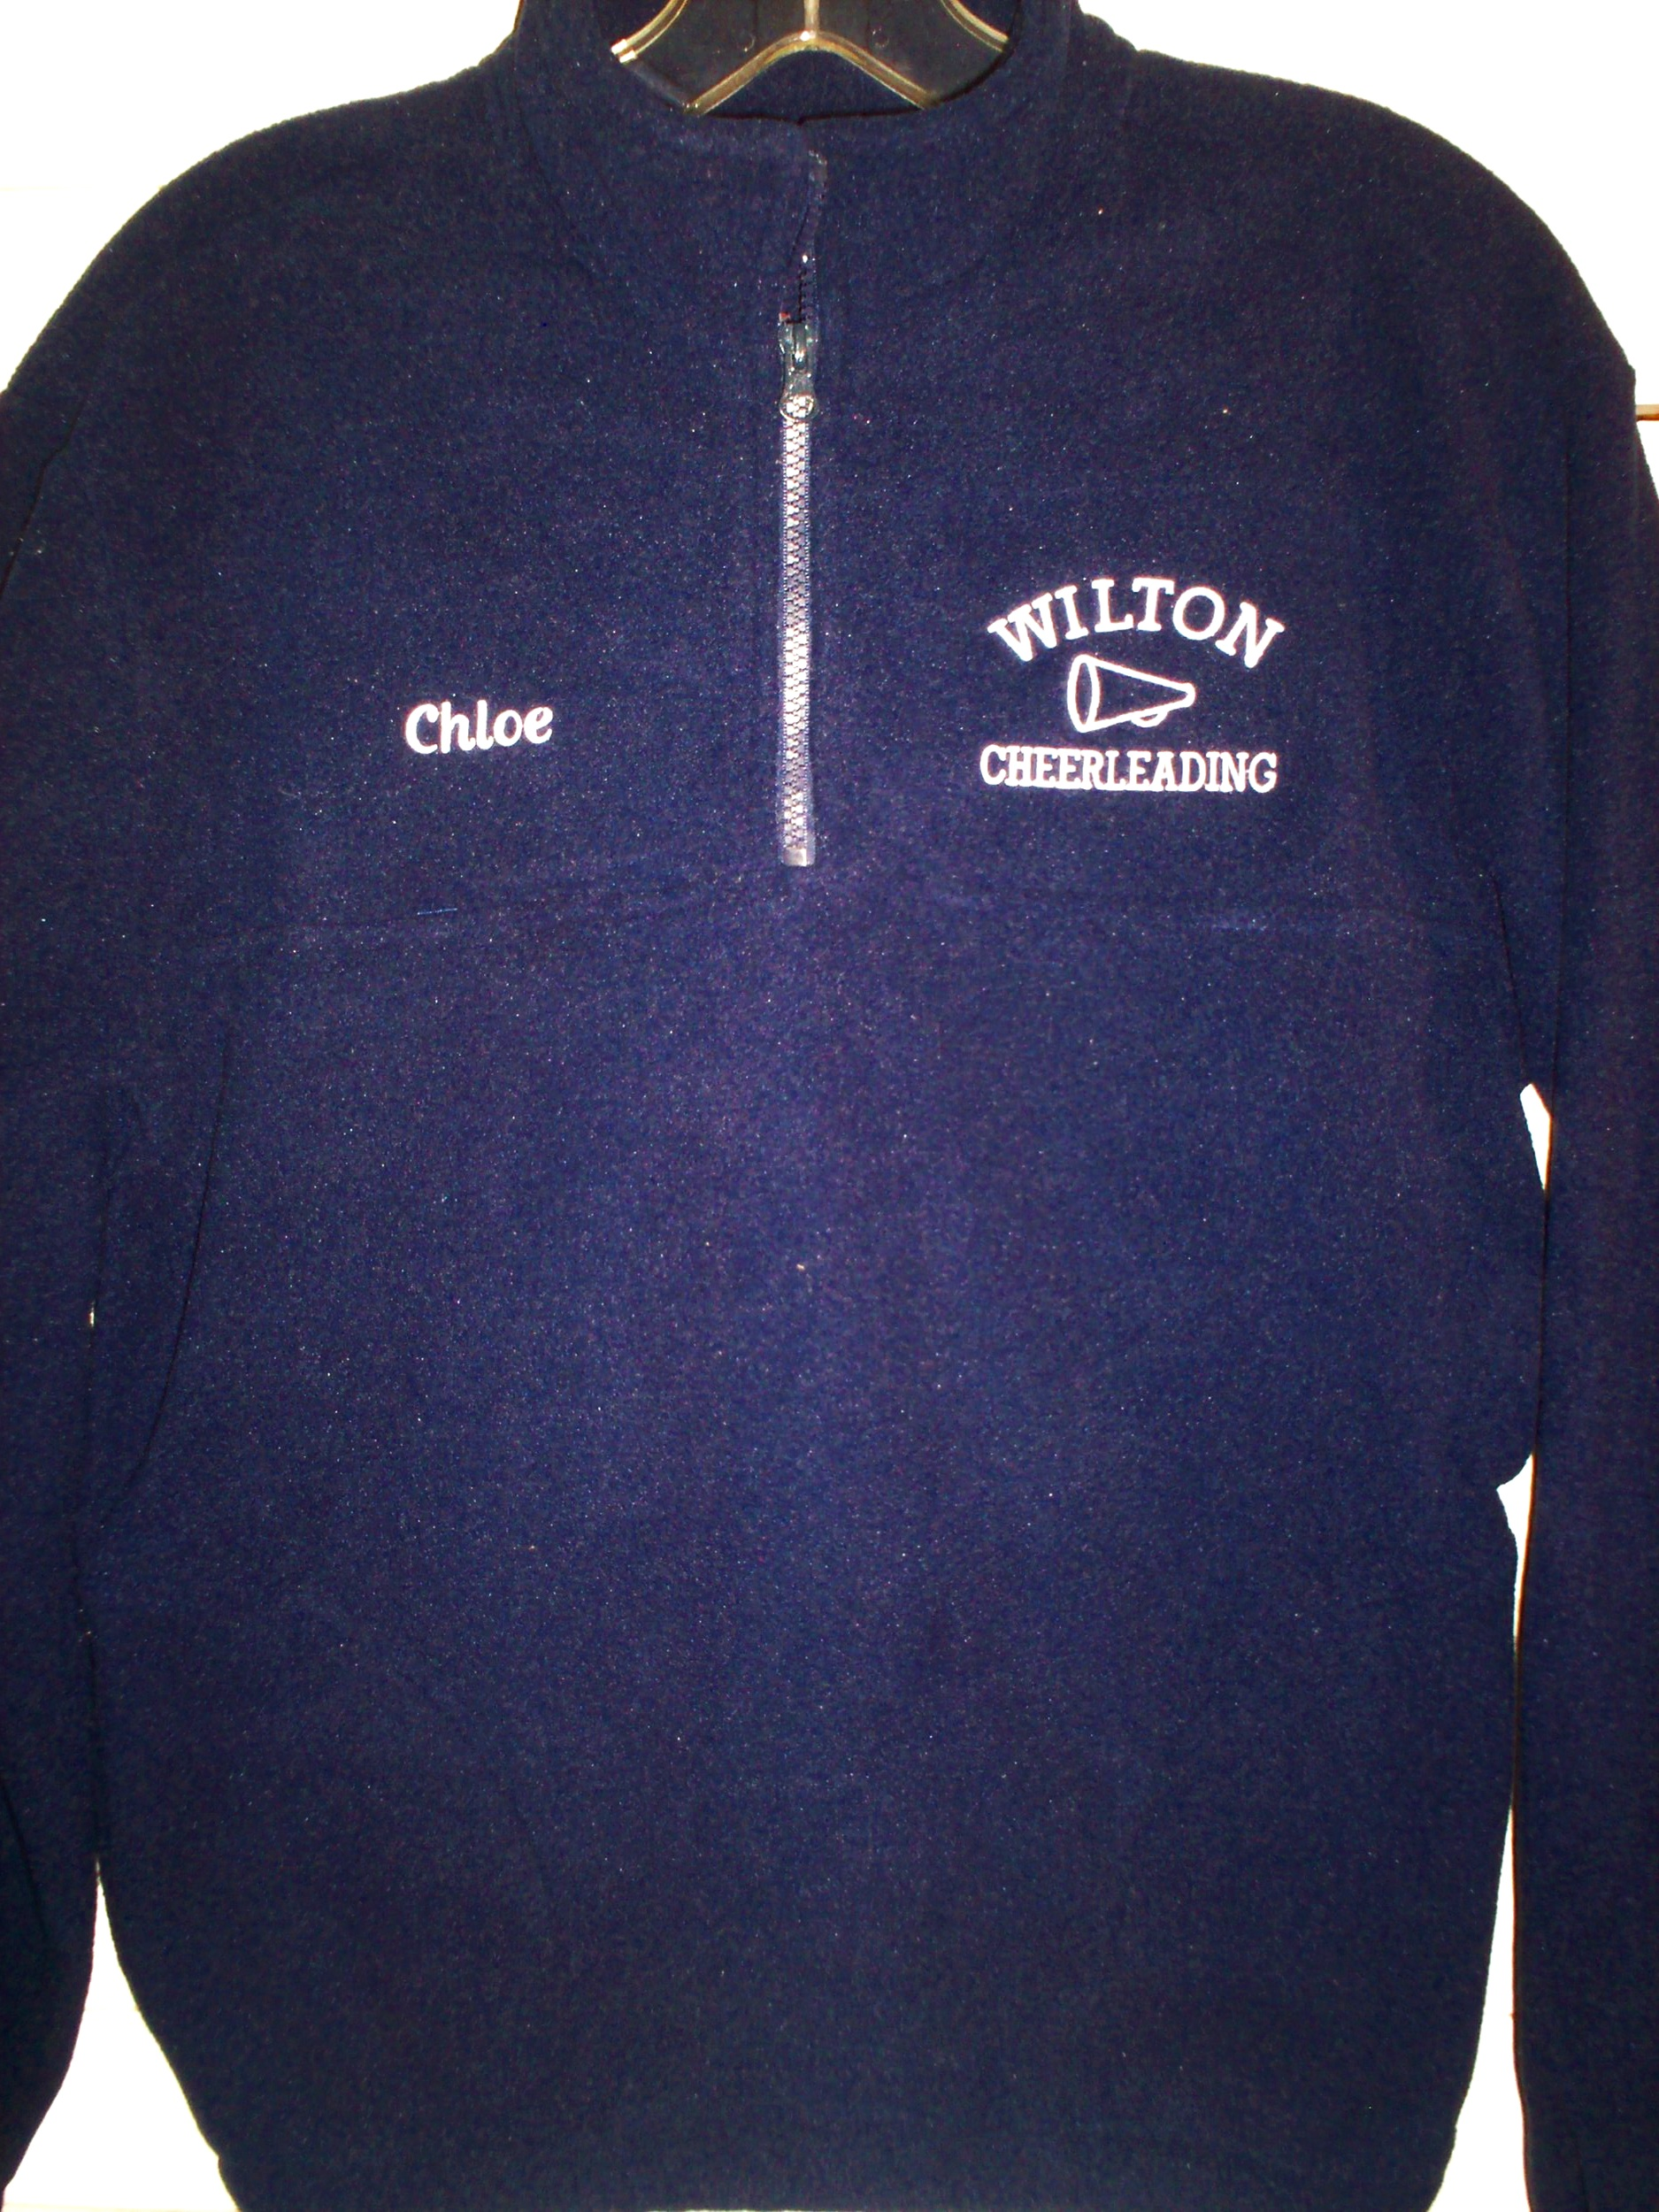 Our Wilton Youth Cheer Fleeces are super comfortable, and come with the players name custom-embroidered on the front. Order yours today!